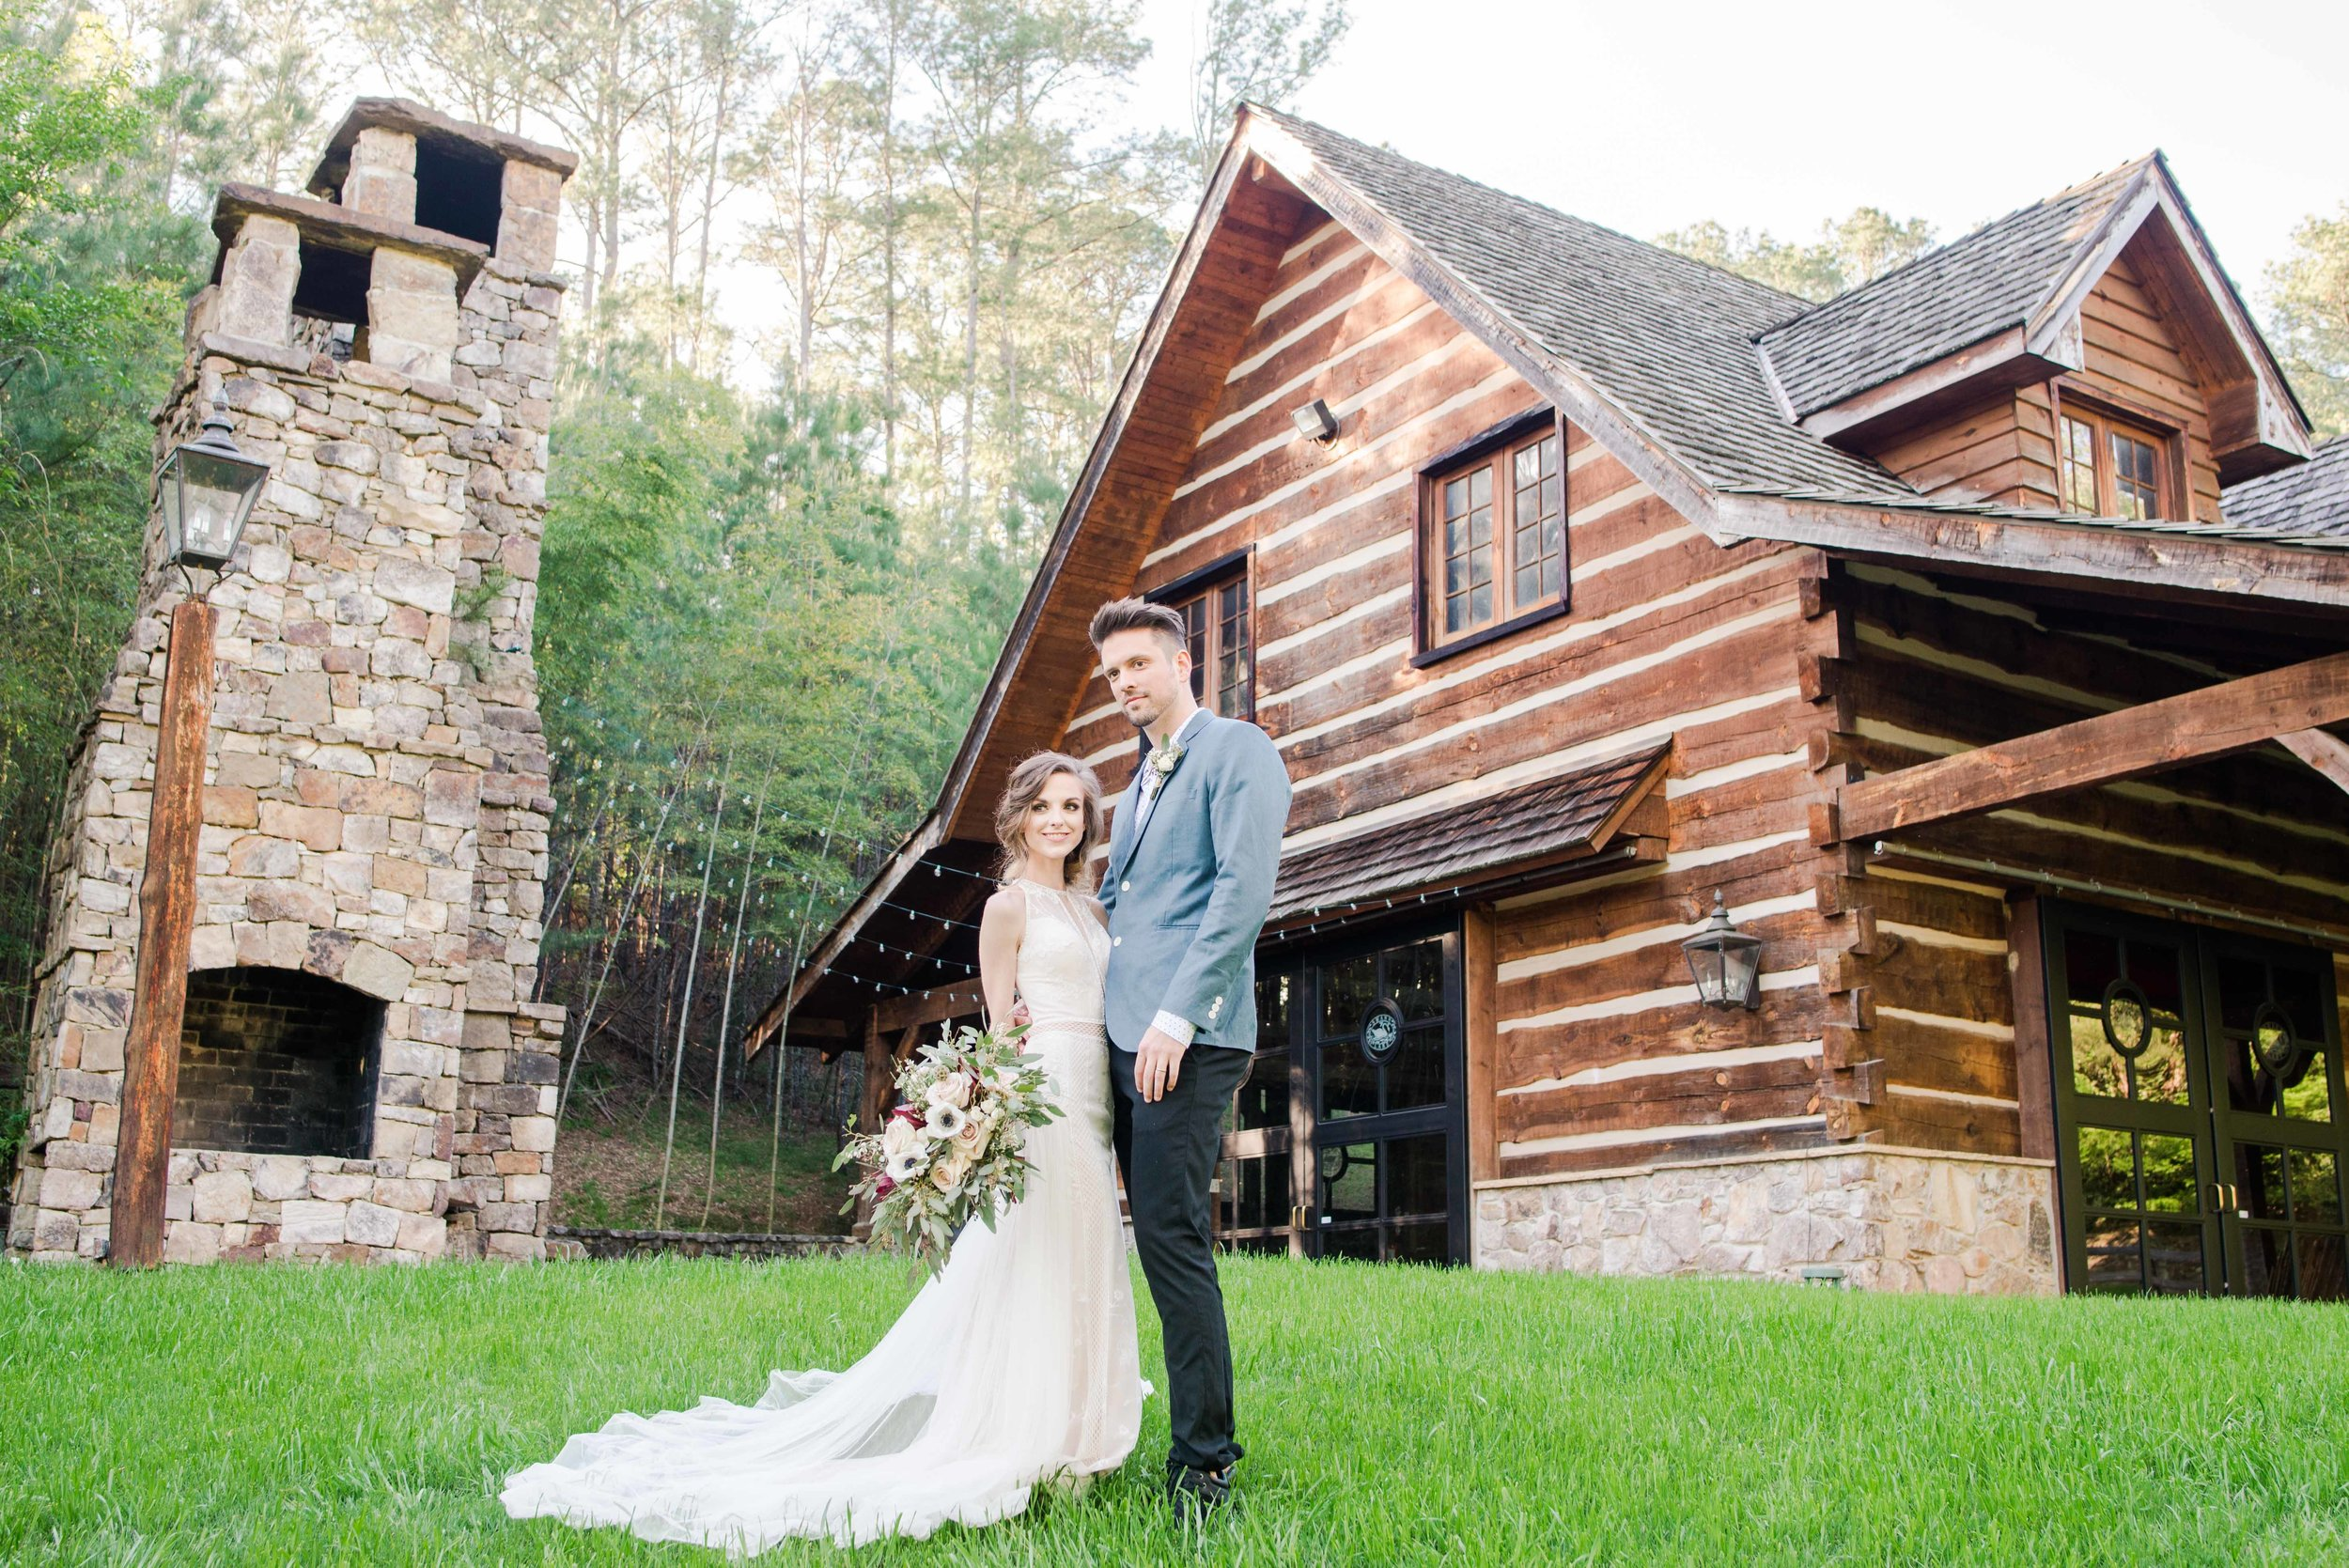 Deborah Michelle Photography Birmingham Alabama Wedding Photographer Swann Lakes Stables